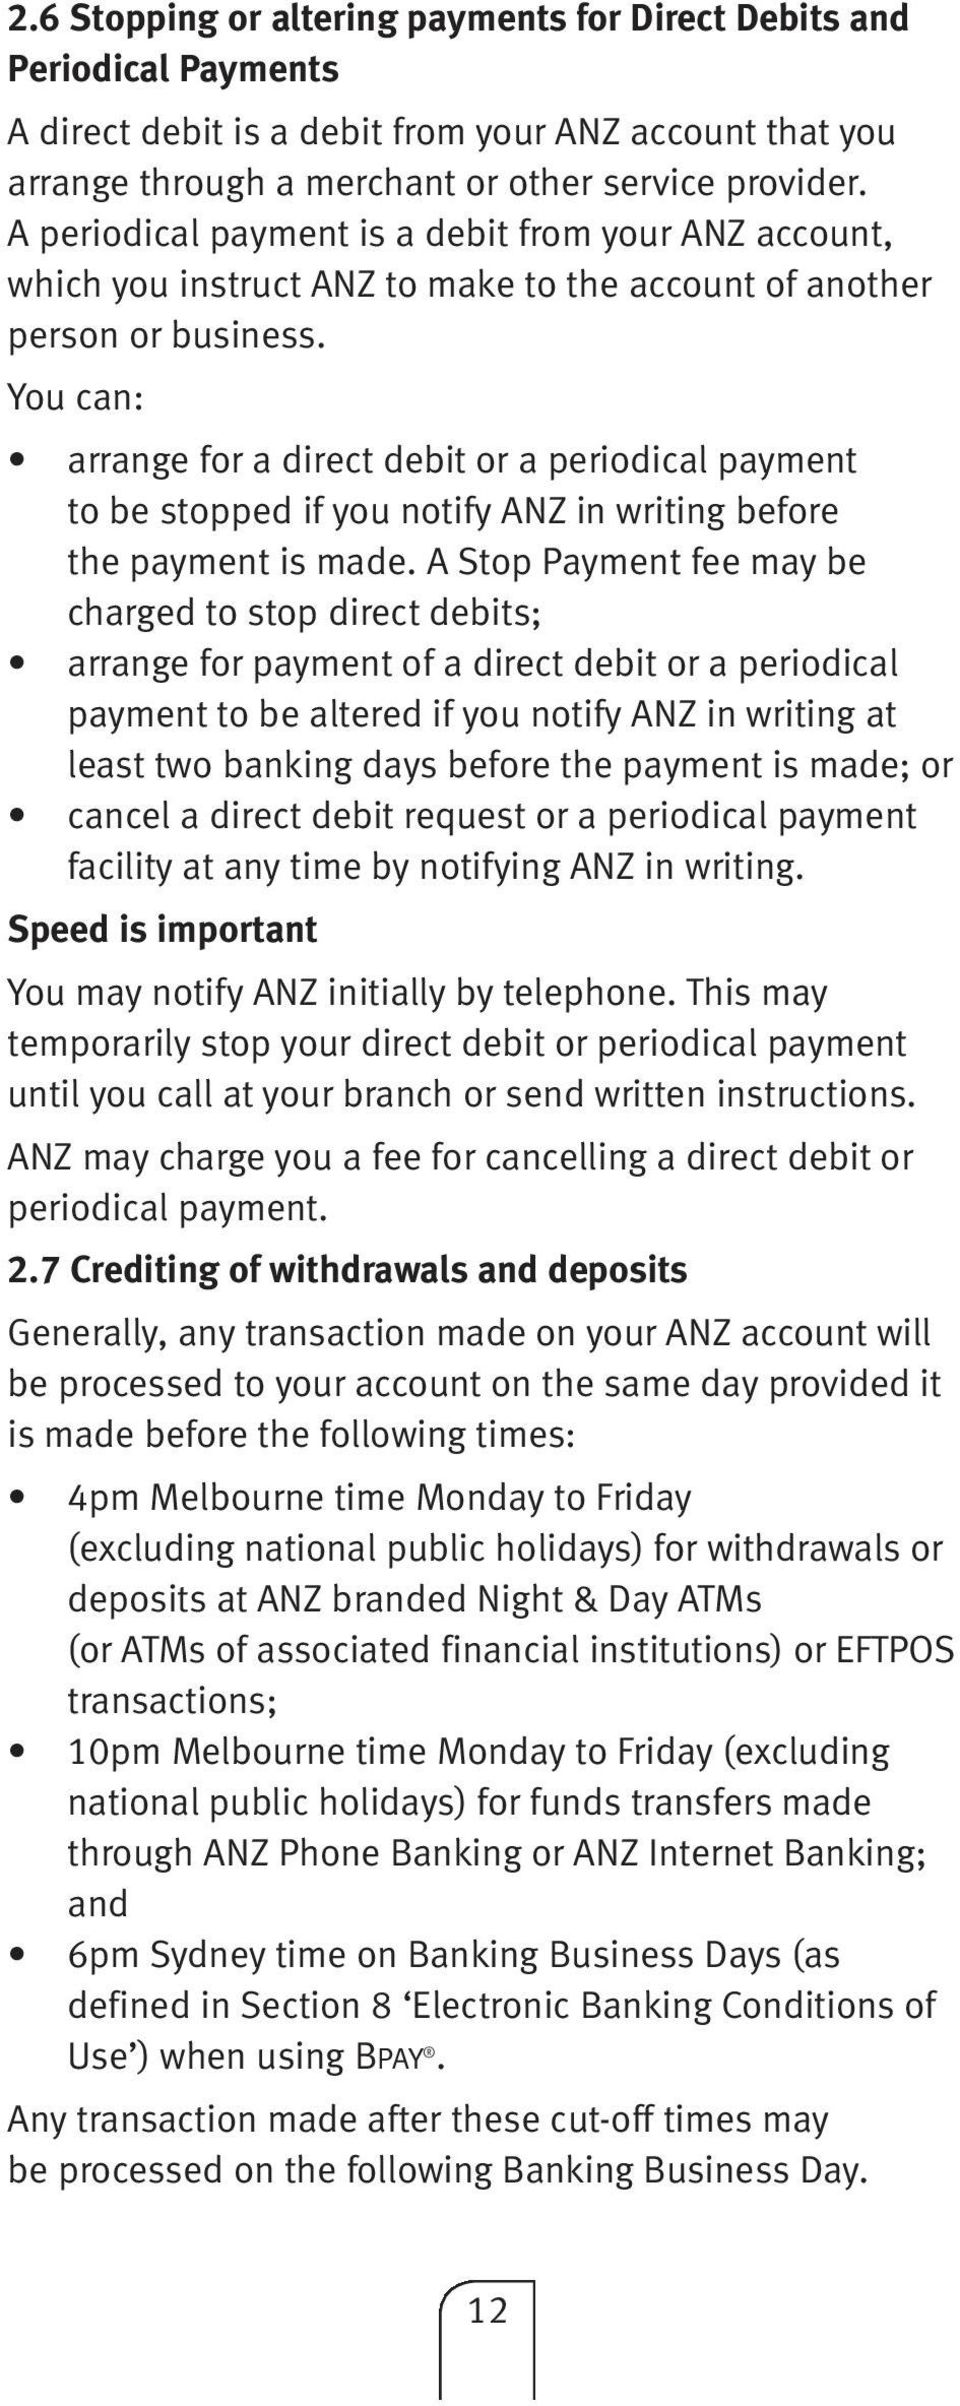 You can: arrange for a direct debit or a periodical payment to be stopped if you notify ANZ in writing before the payment is made.